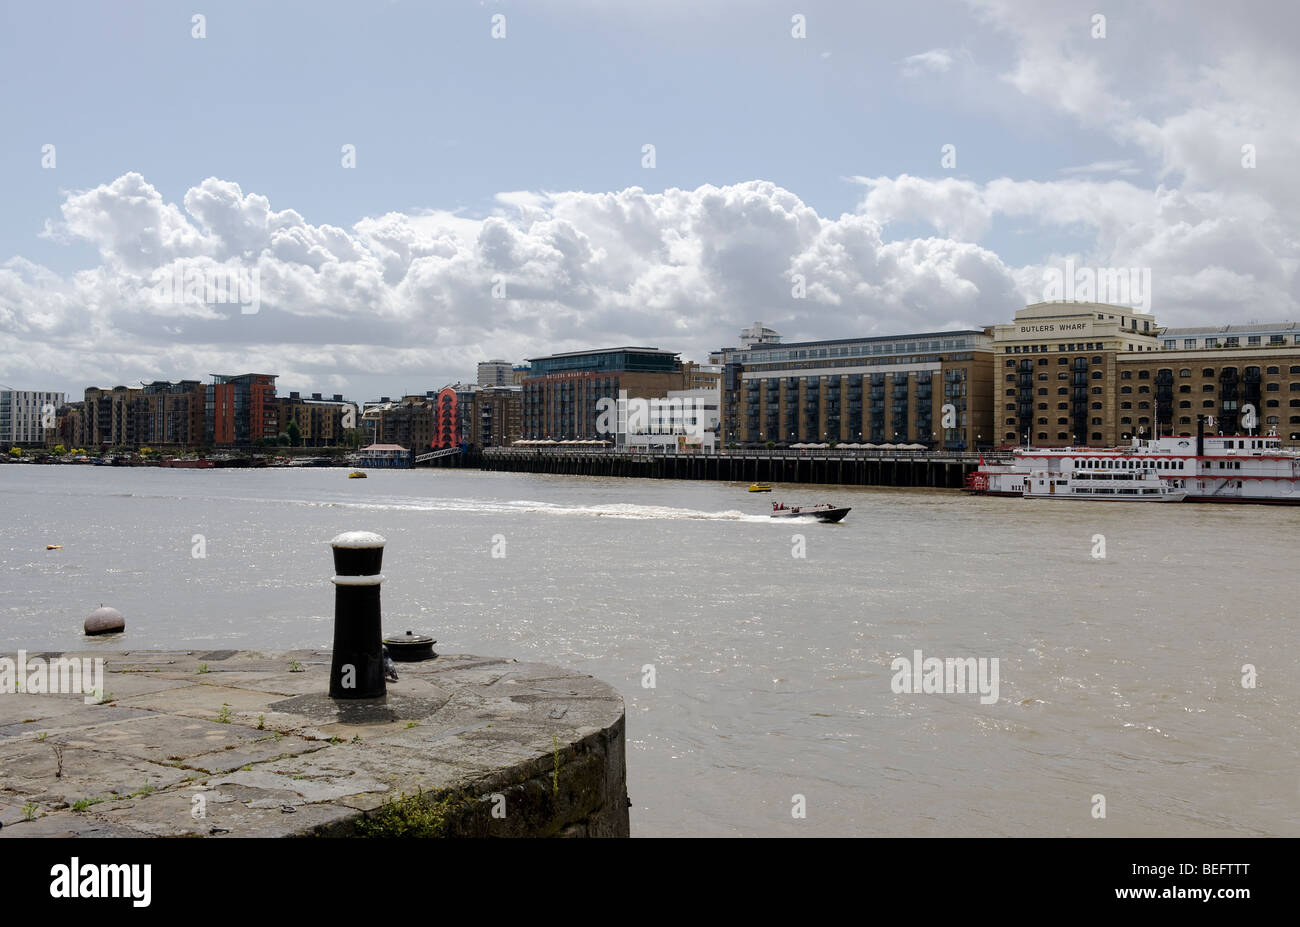 Butler's Wharf warehouse complex River Thames London - Stock Image